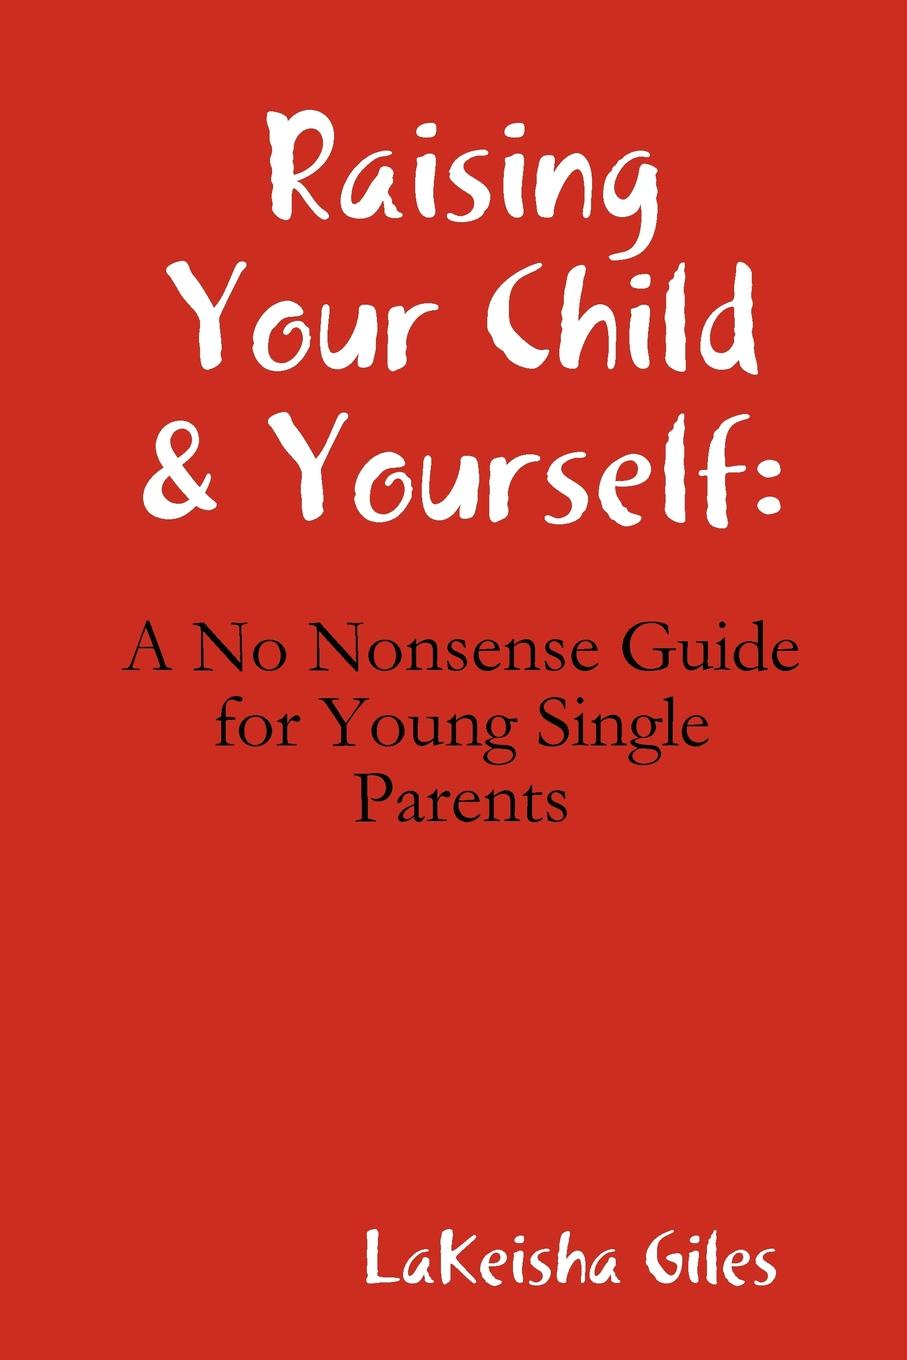 Фото - Lakeisha Giles Raising Your Child . Yourself. A No Nonsense Guide for Young Single Parents mother and child